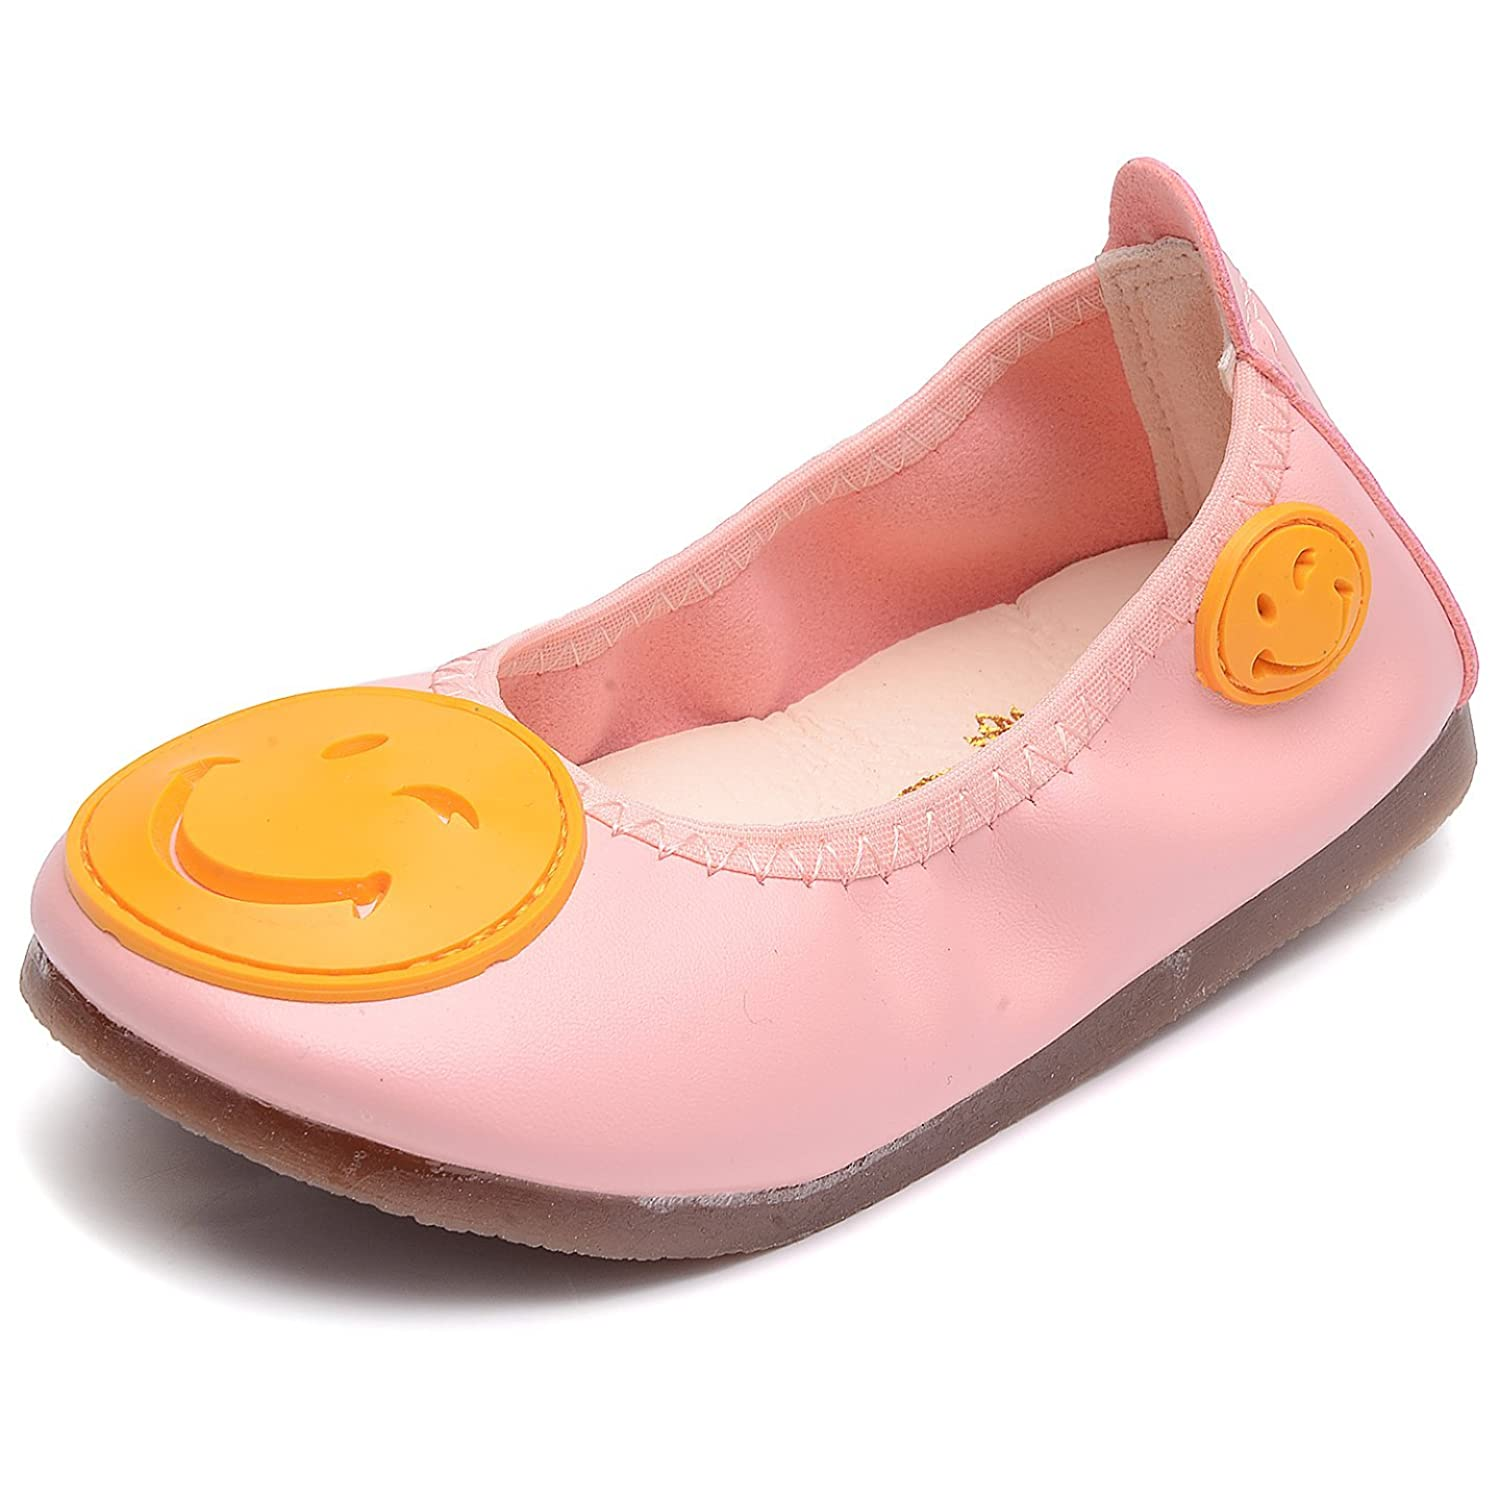 bd1e4ef7f9a7 UBELLA Toddler Girls Leather Slip-On Loafer Boat Dress Shoes Kids Casual  Flats